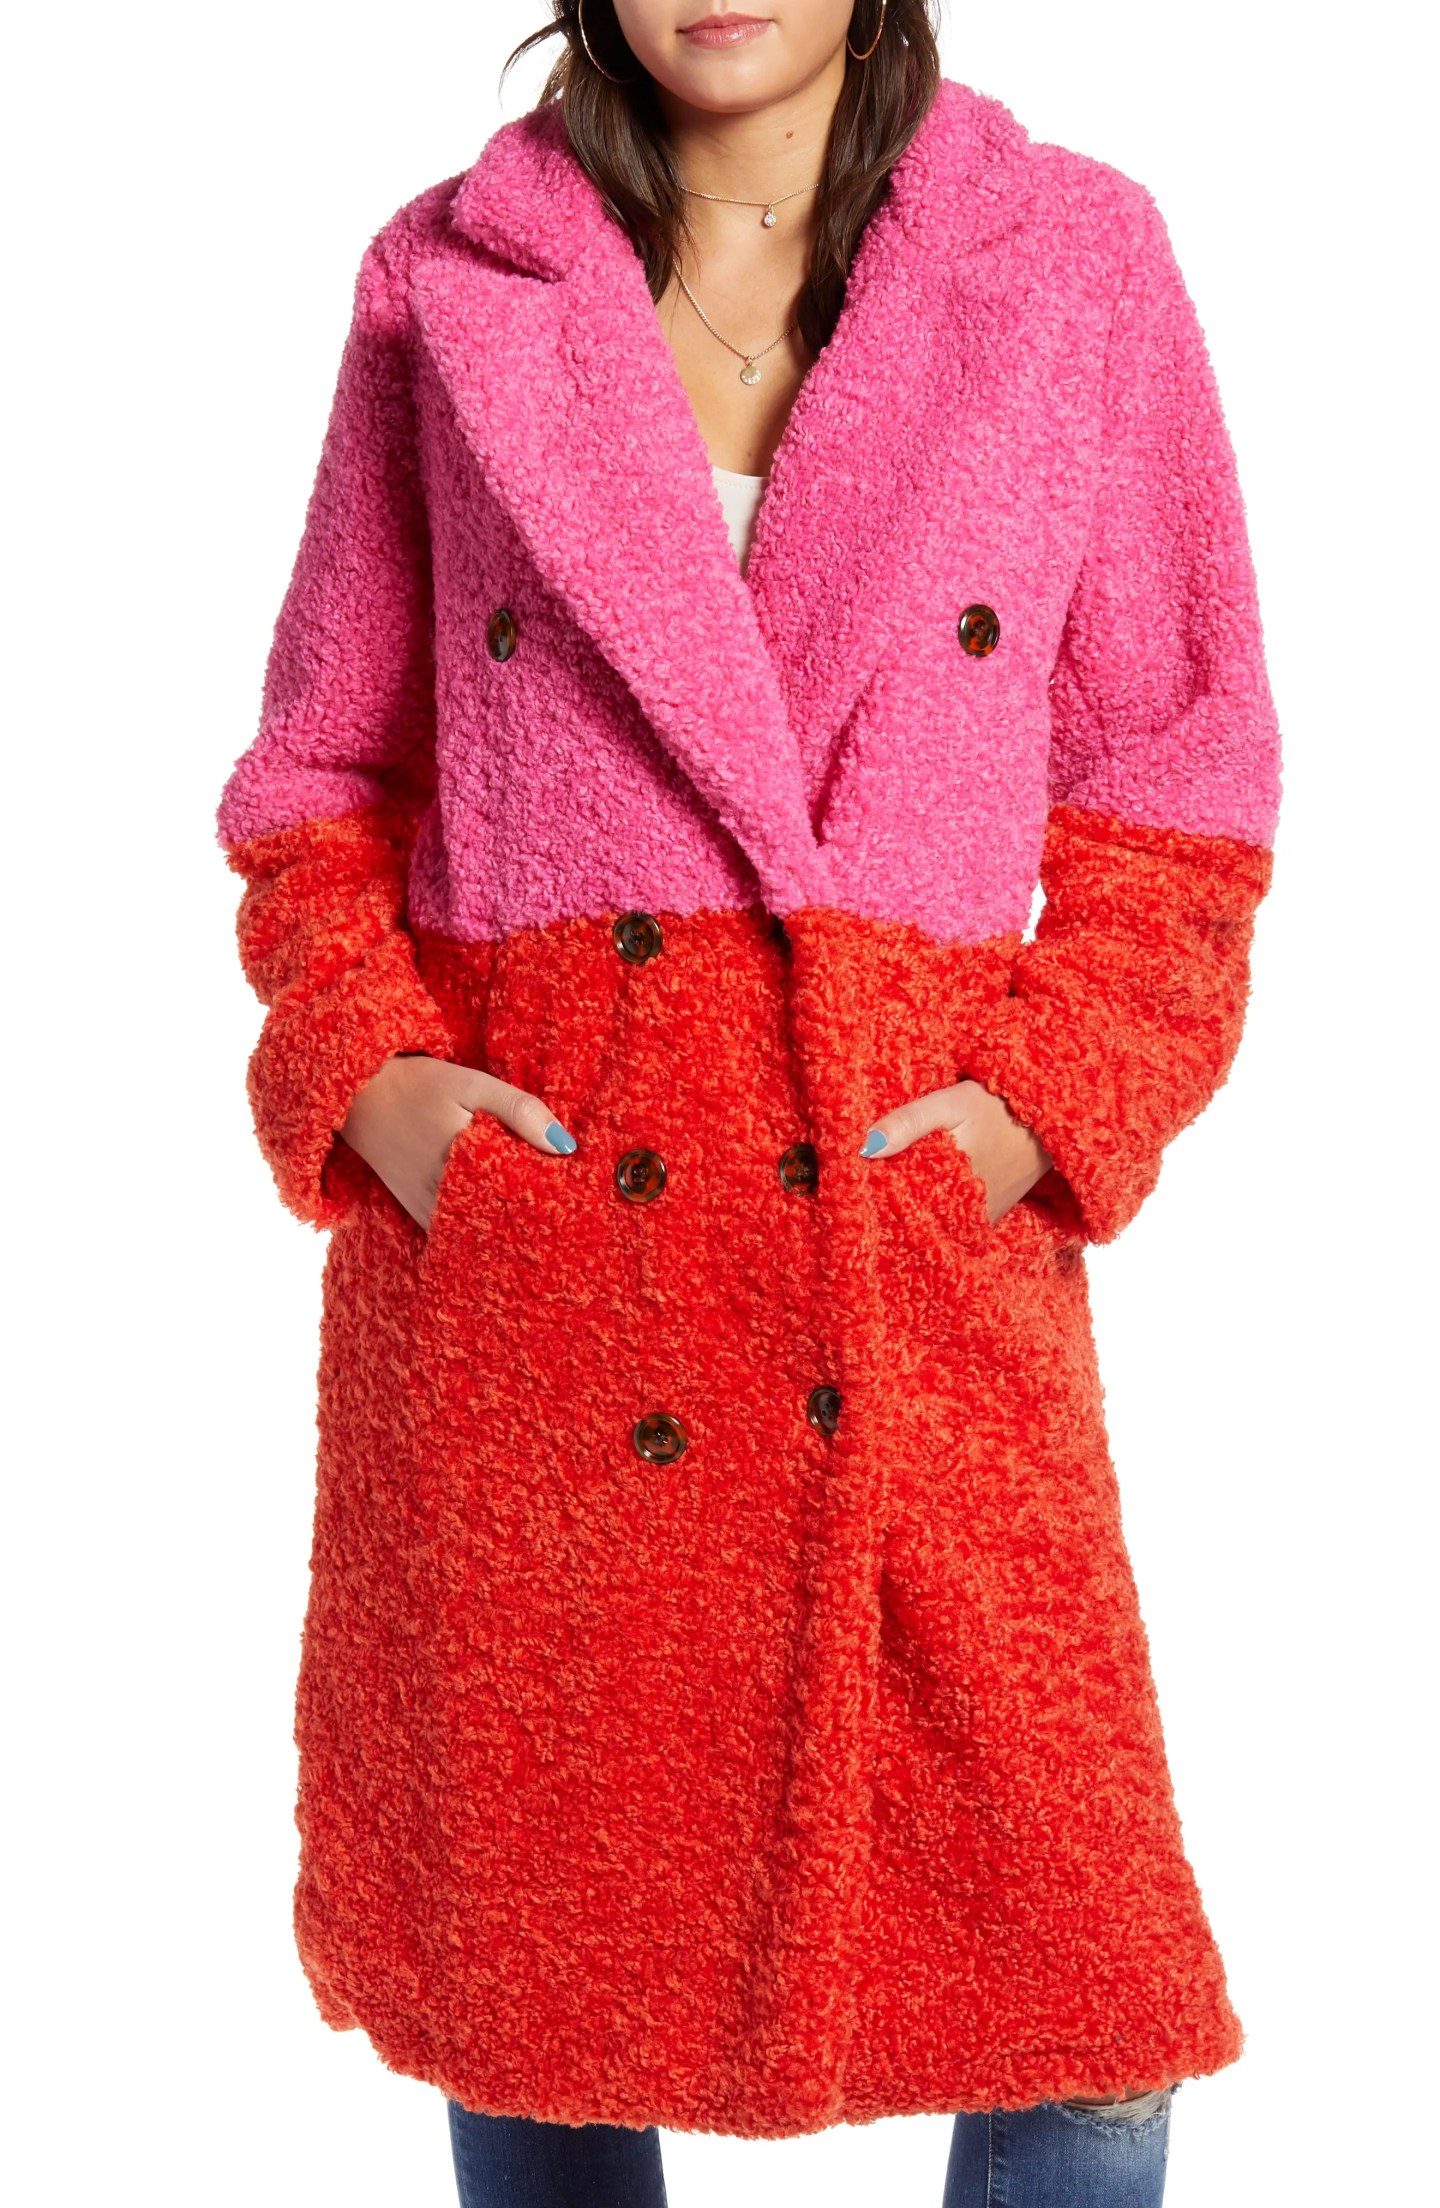 Colorblock Faux Fur Coat from Nordstrom